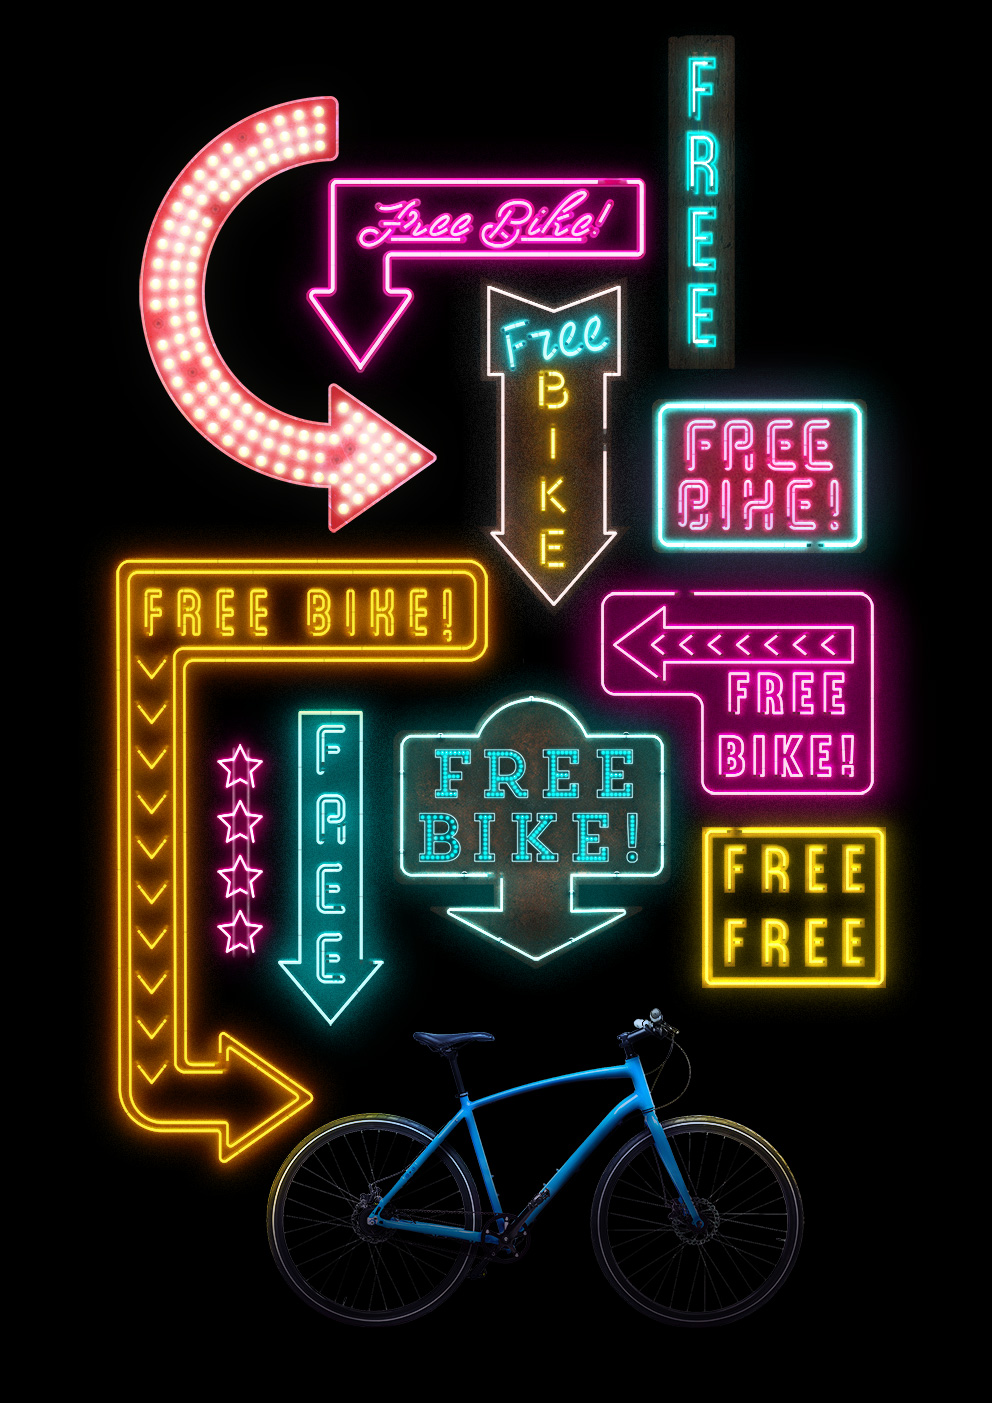 a poster featuring a bike being pointed at by many different neon lights reading 'free bike!'